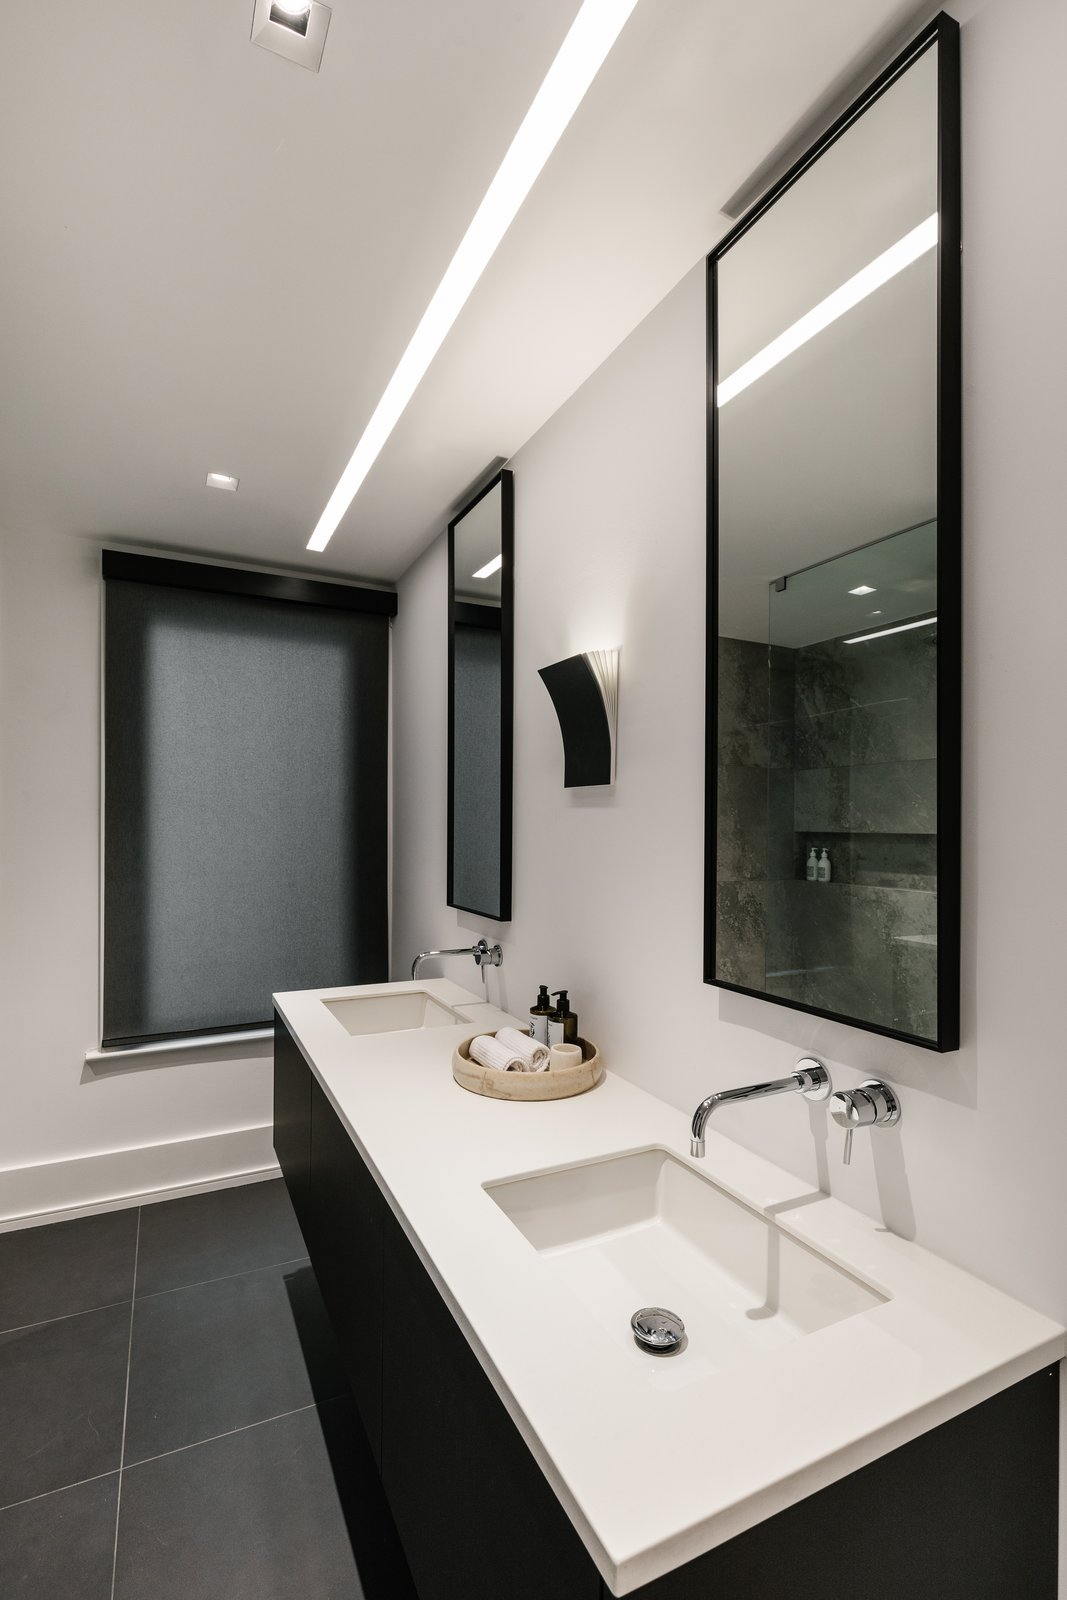 Bath Room, Quartzite Counter, Undermount Sink, Ceiling Lighting, Ceramic Tile Floor, Wall Lighting, Accent Lighting, Track Lighting, and Recessed Lighting  The Adelaide Project